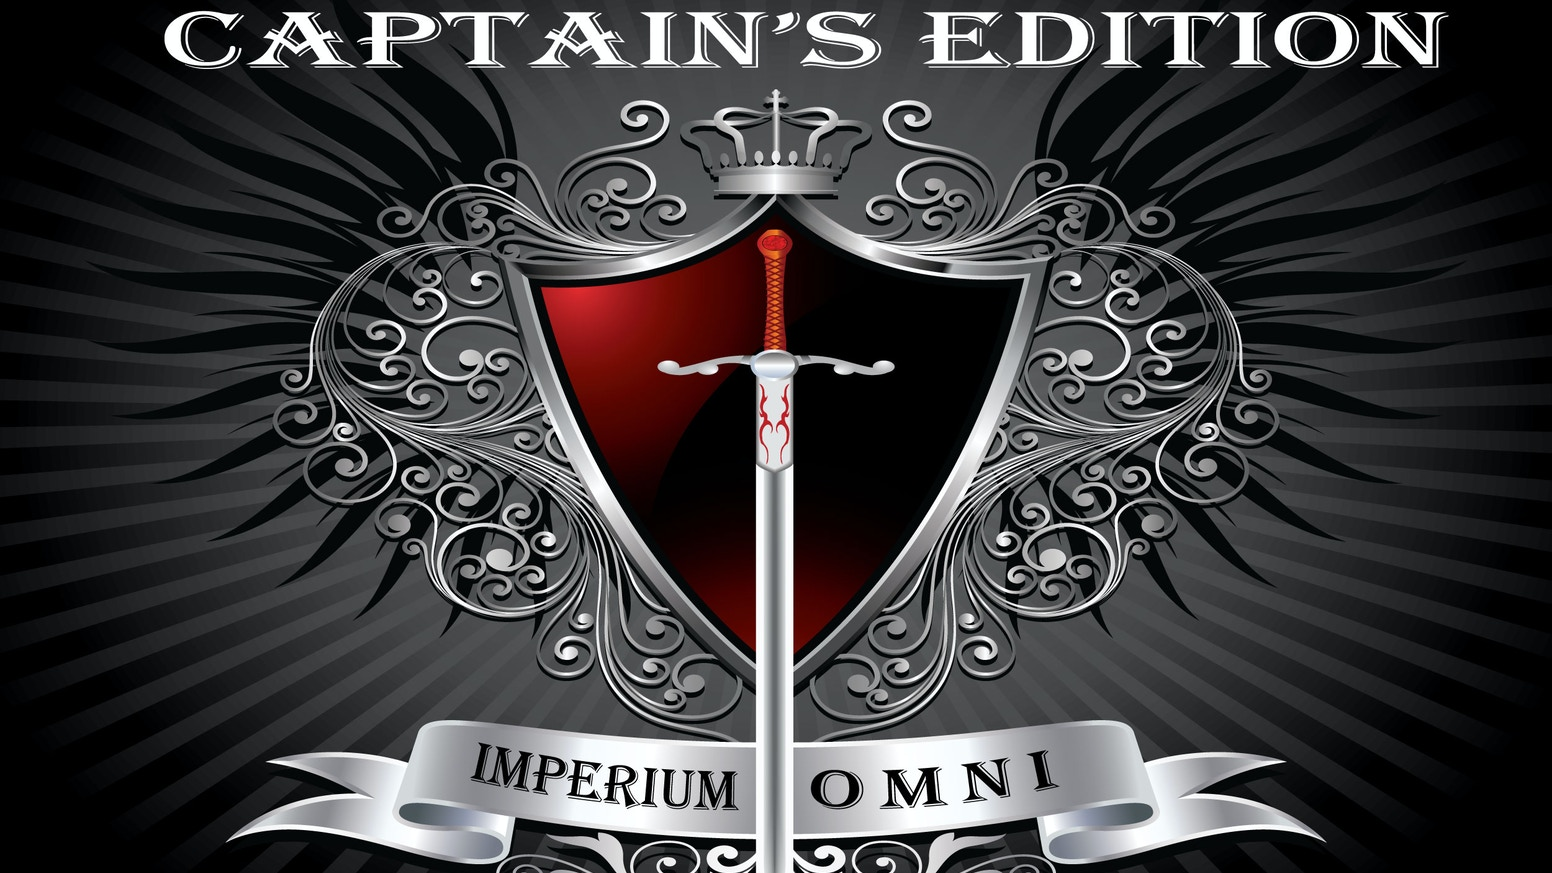 Imperium Omni-a Massive 4 part Serialized Role Playing Game and Novel in the classic Retro Fantasy style